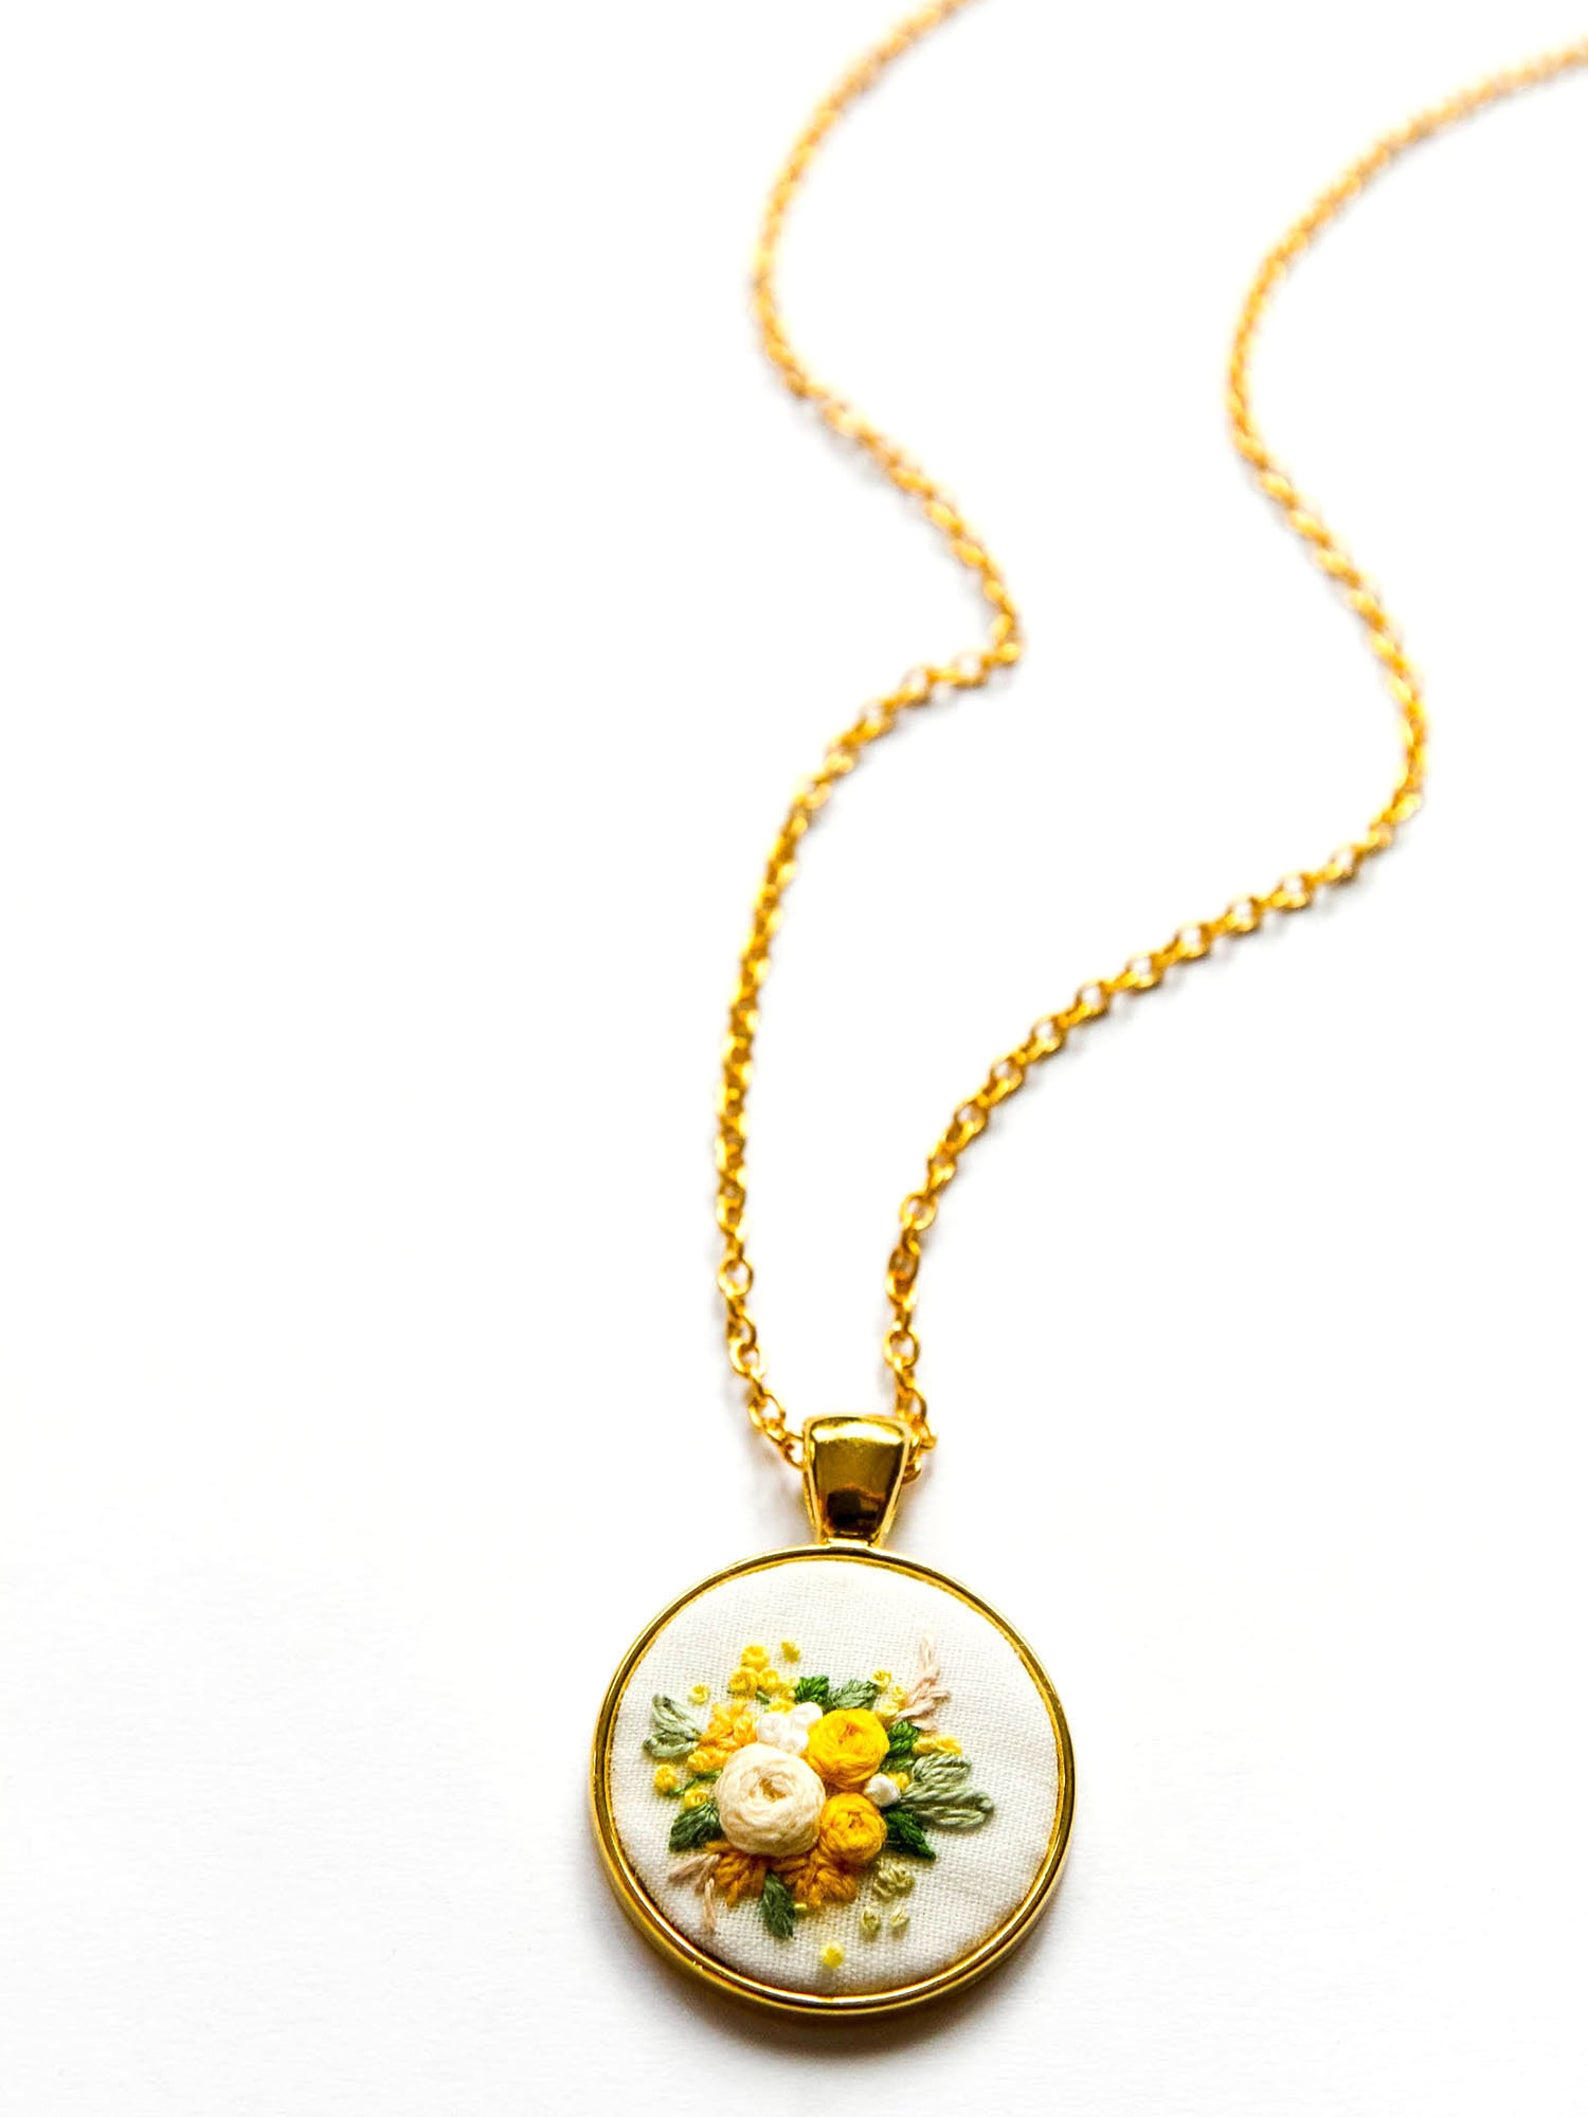 WEEKLY FINDS // Hand Embroidered Flowers Necklace